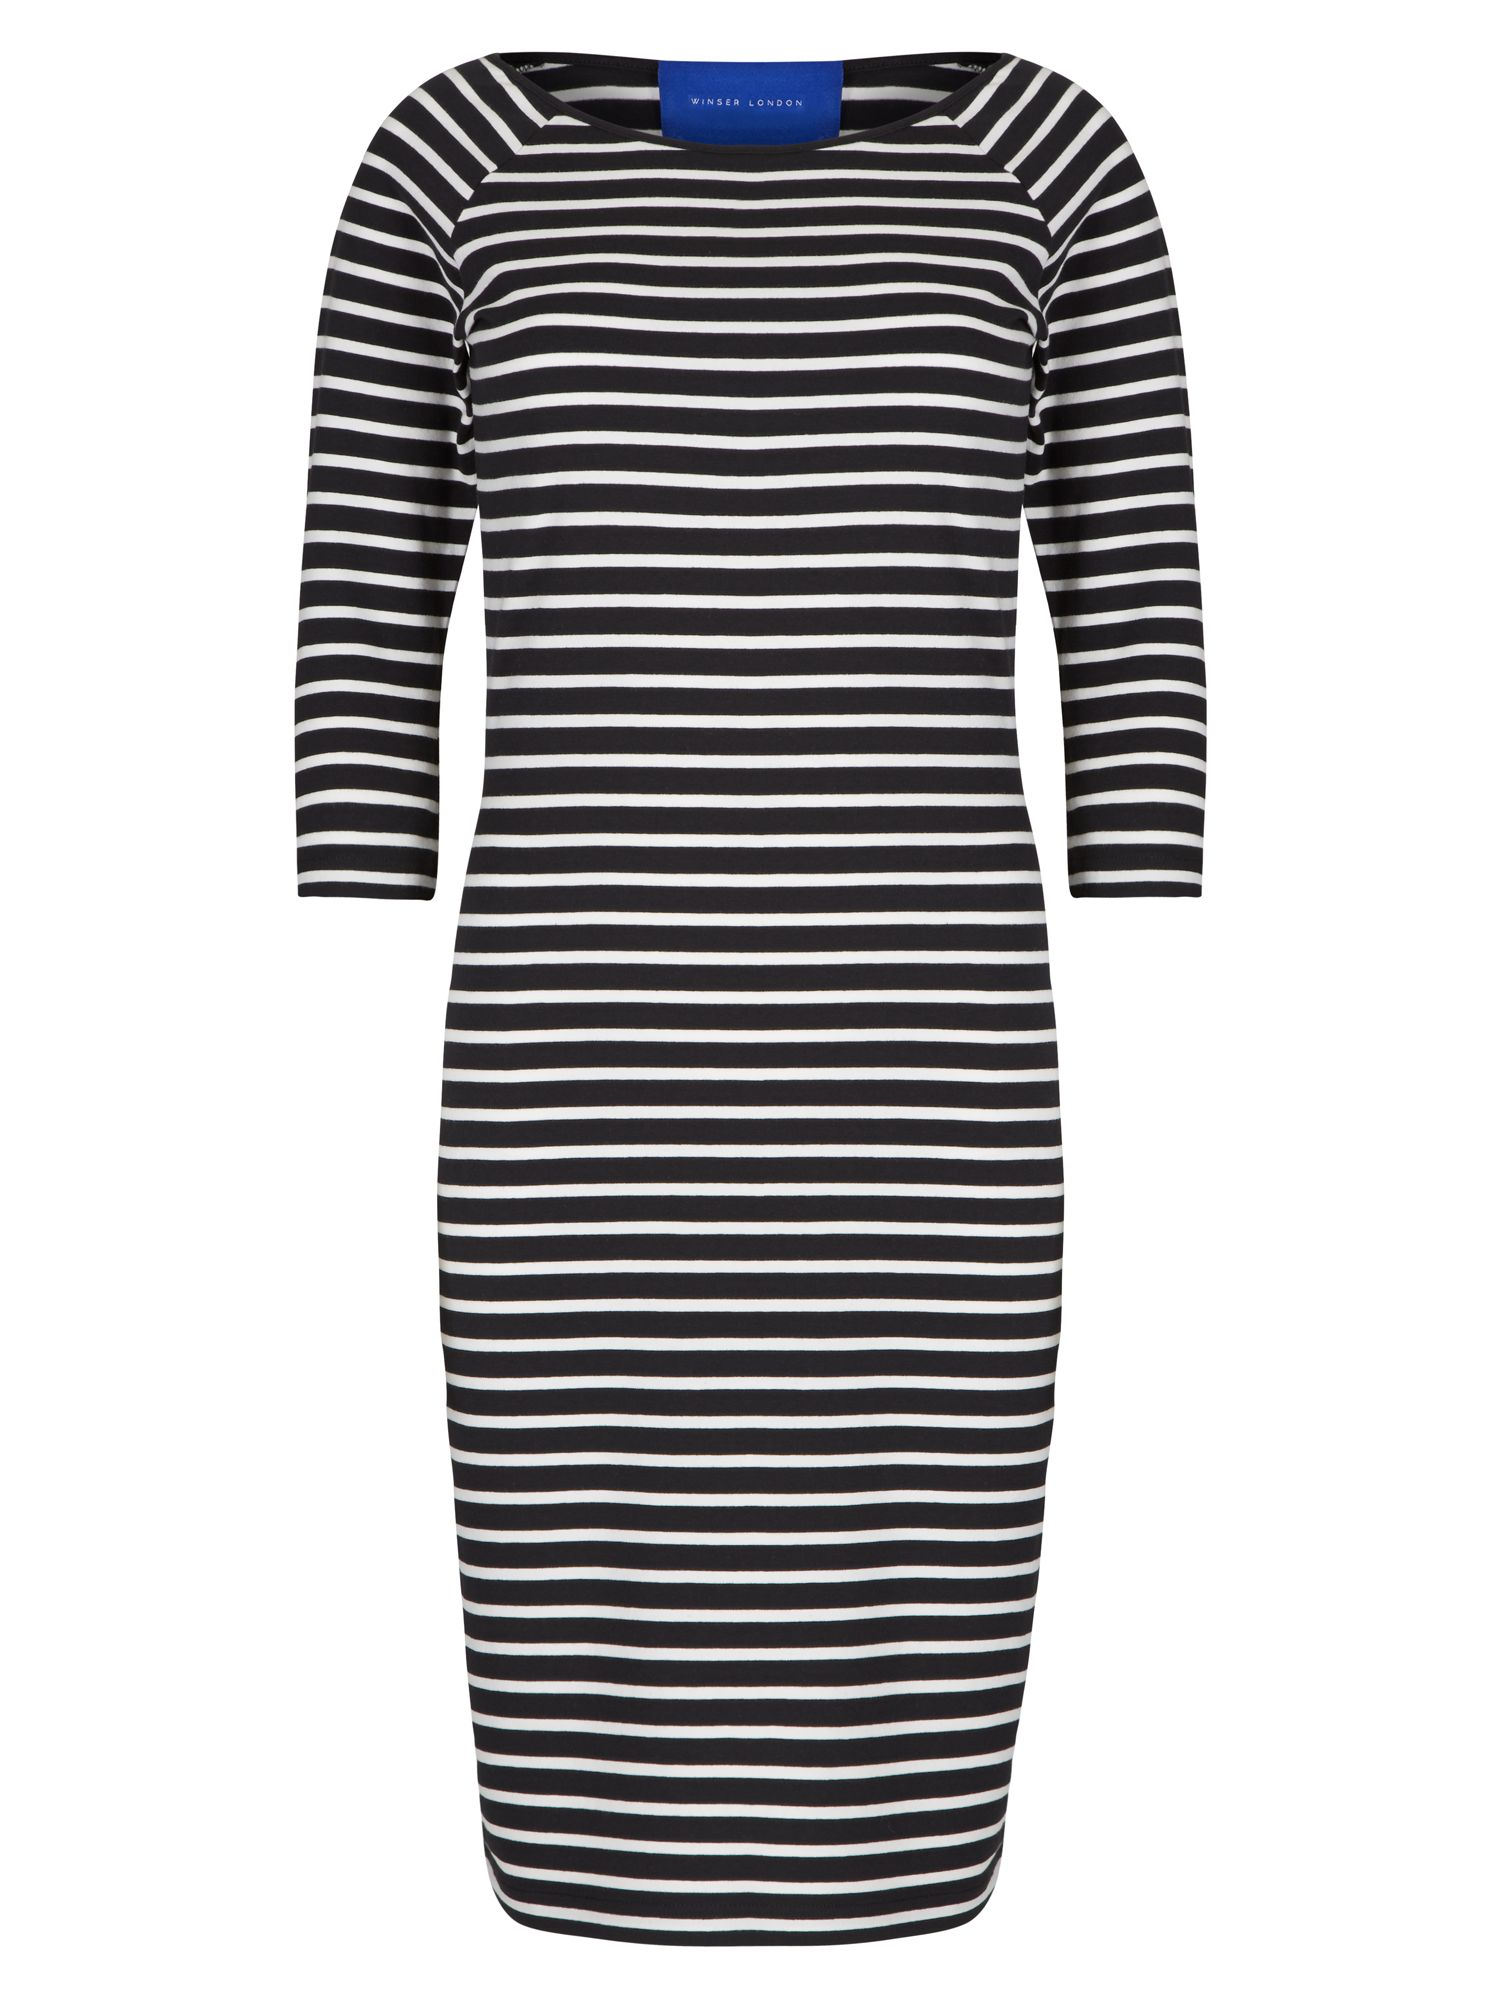 Winser London Cotton Jersey Striped Dress, Black